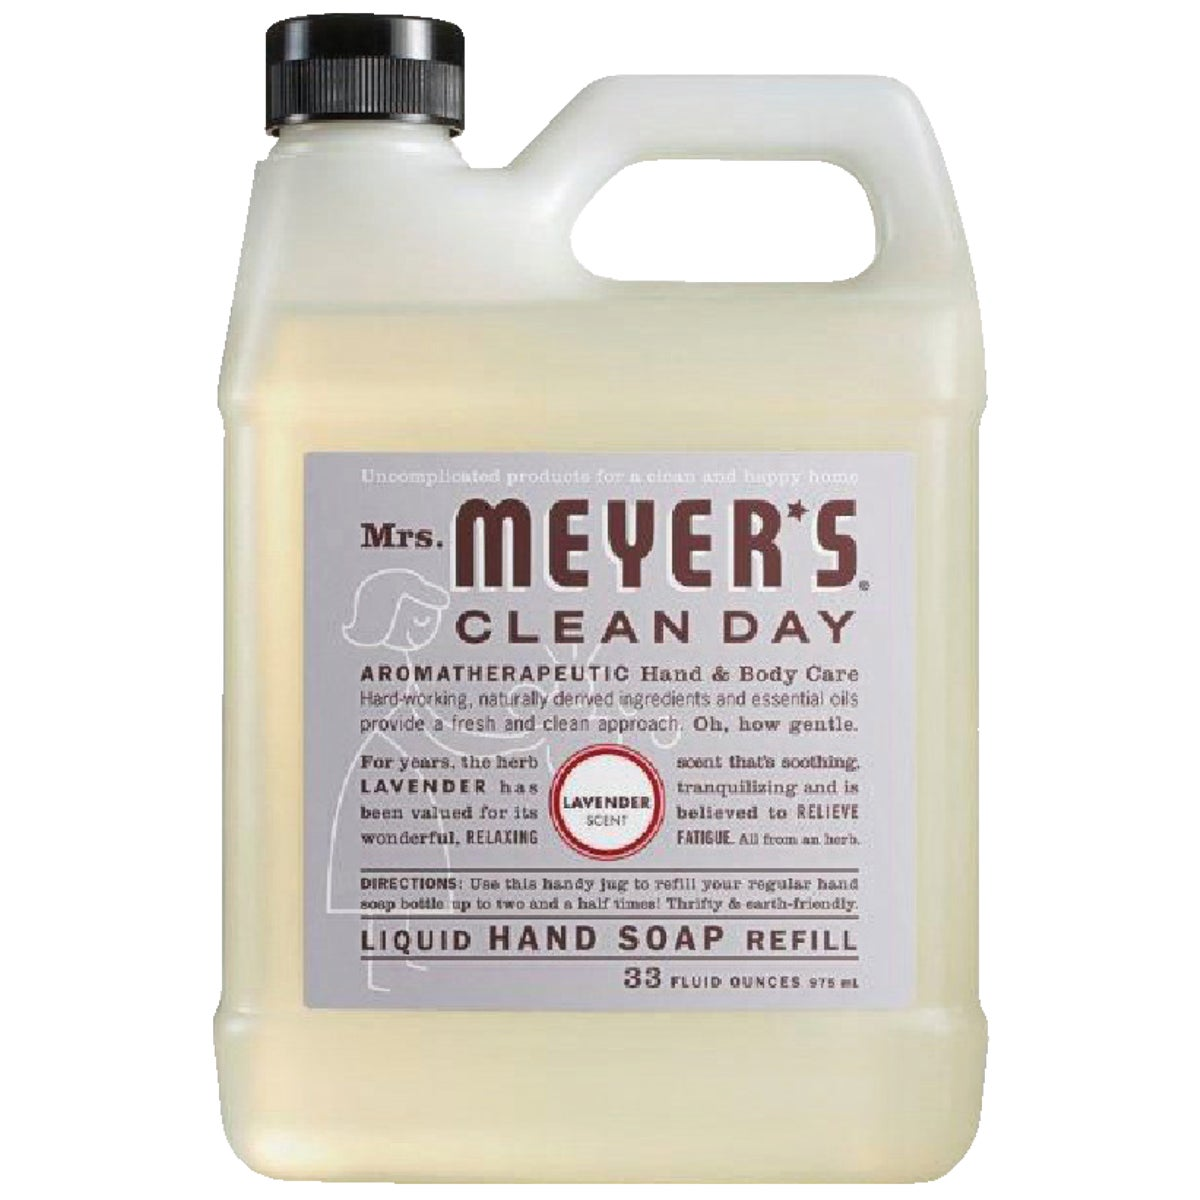 33OZ LAV LIQ HAND SOAP - 11163 by Mrs Meyers Clean Day